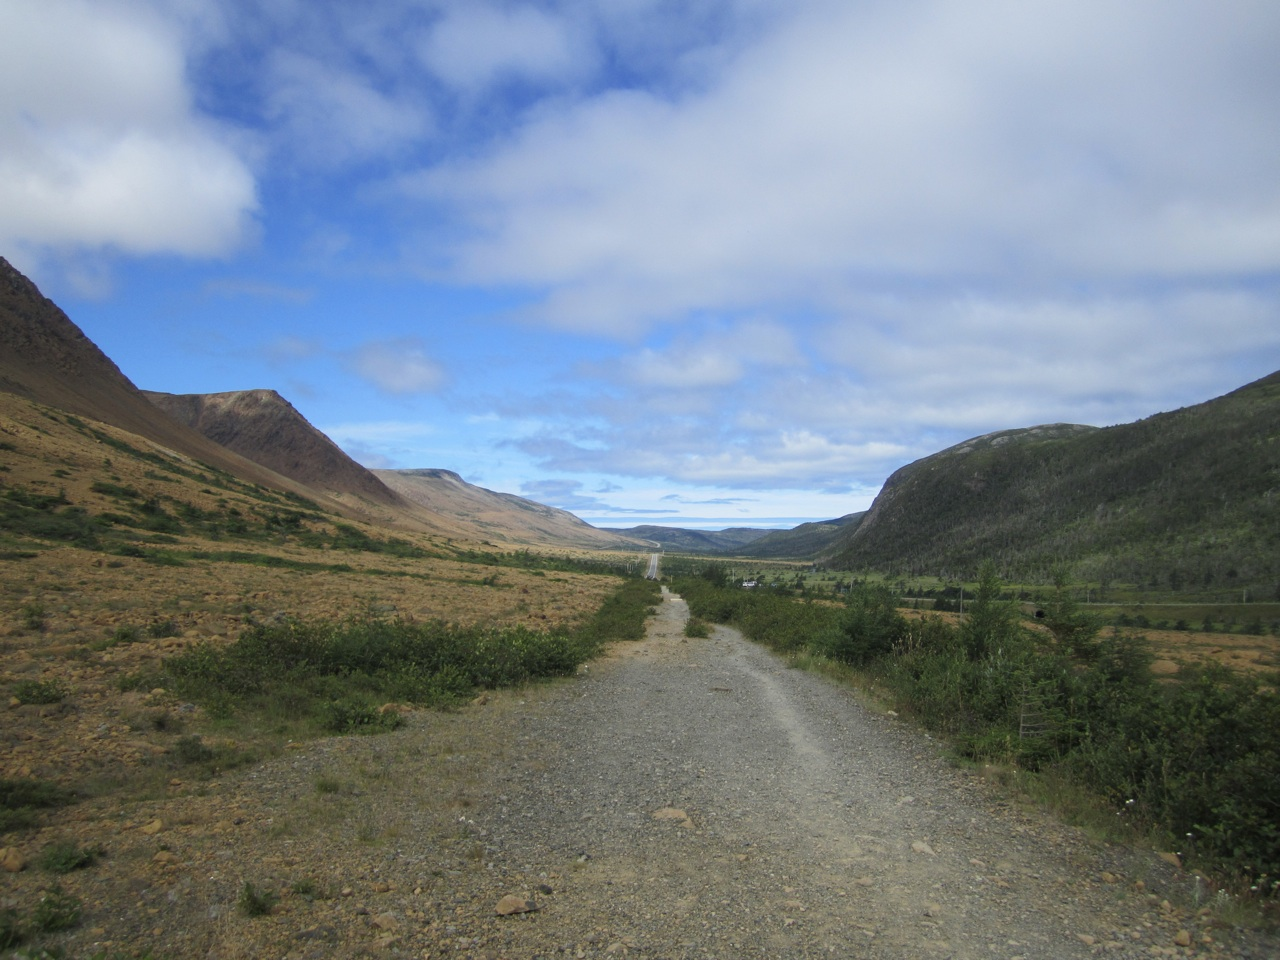 The Tablelands Trail